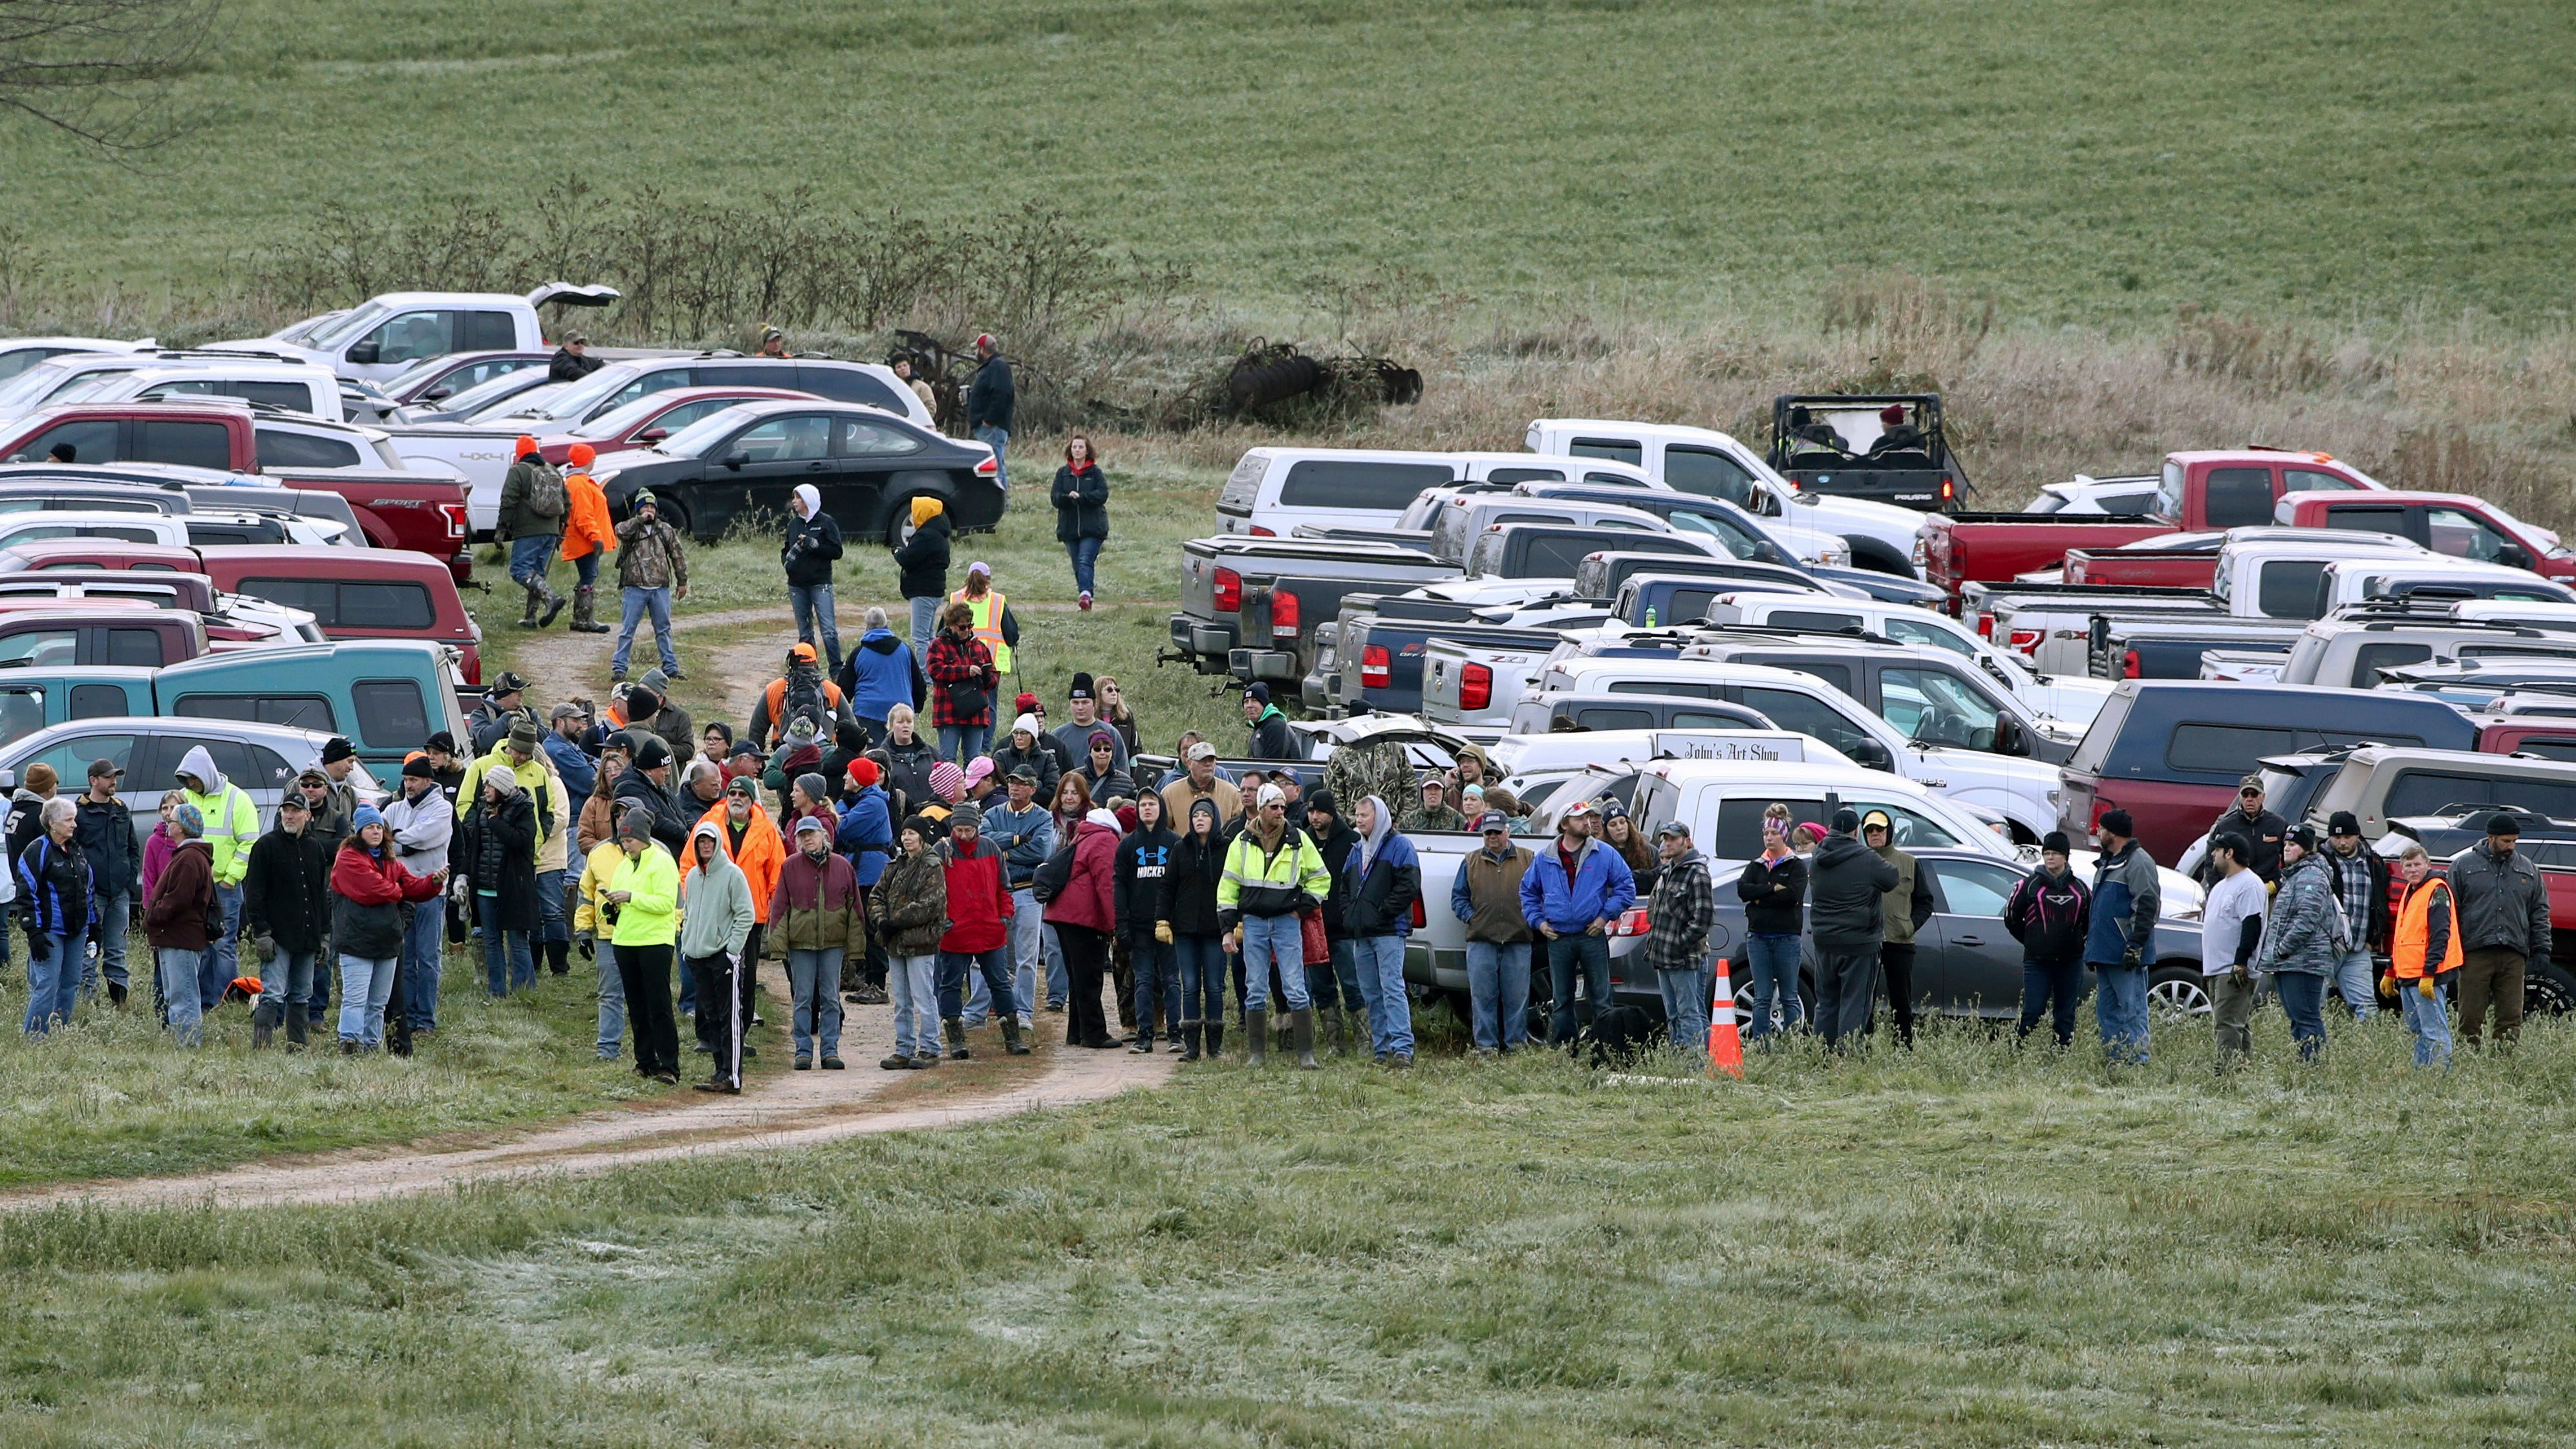 Hundreds of volunteers gather Tuesday, Oct. 23, 2018, in Barron, Wis., to assist in the search for Jayme Closs, a missing teenage Wisconsin girl, whose parents were killed in the family's home. Jayme has been missing since Oct. 15, when deputies responding to a 911 call found that someone had broken into the family's home in Barron and gunned down James and Denise Closs.